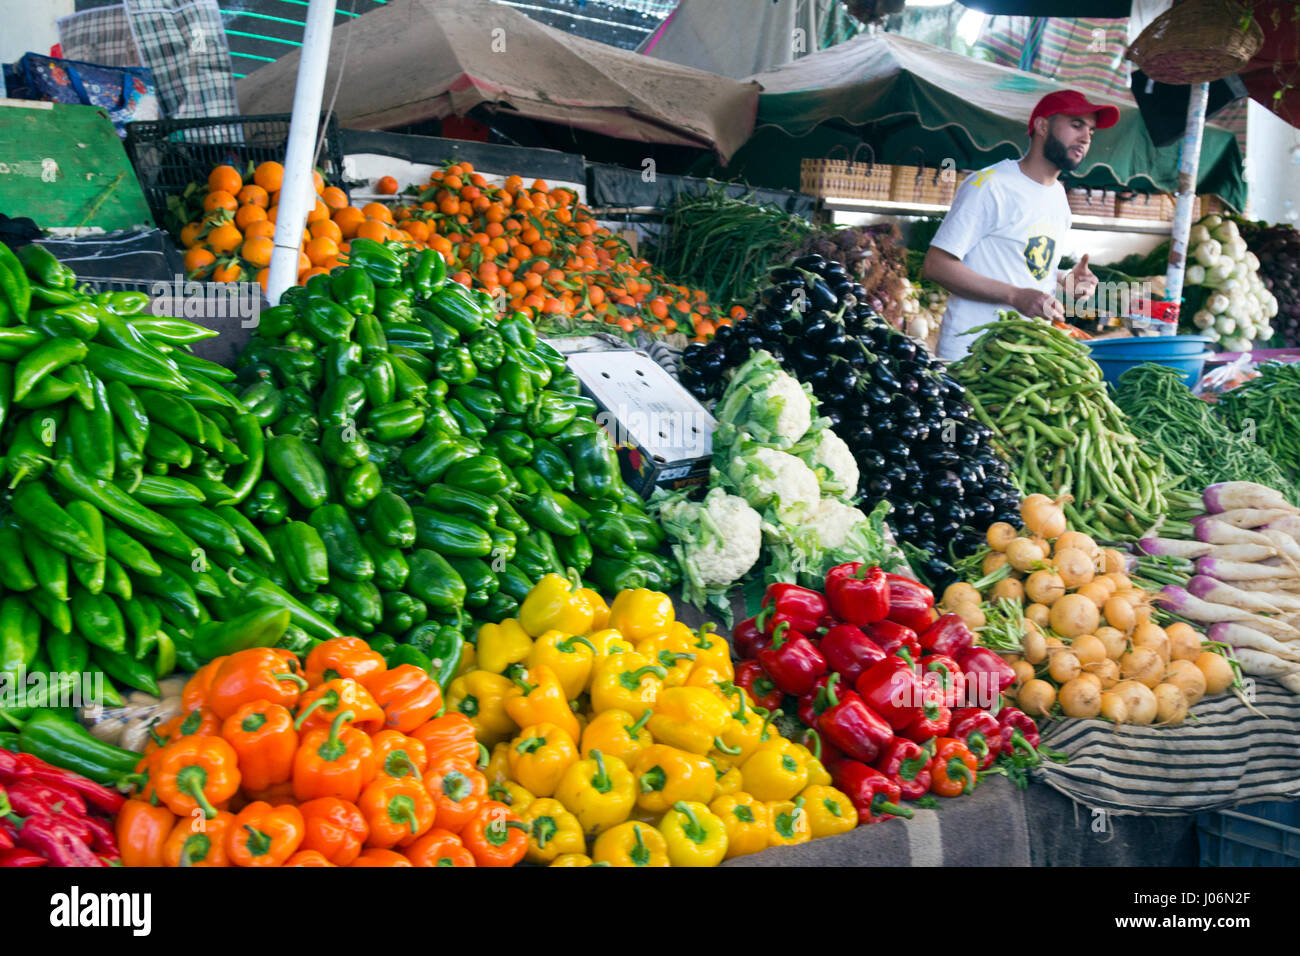 fruits and vegetables on display in a market stall in agadir